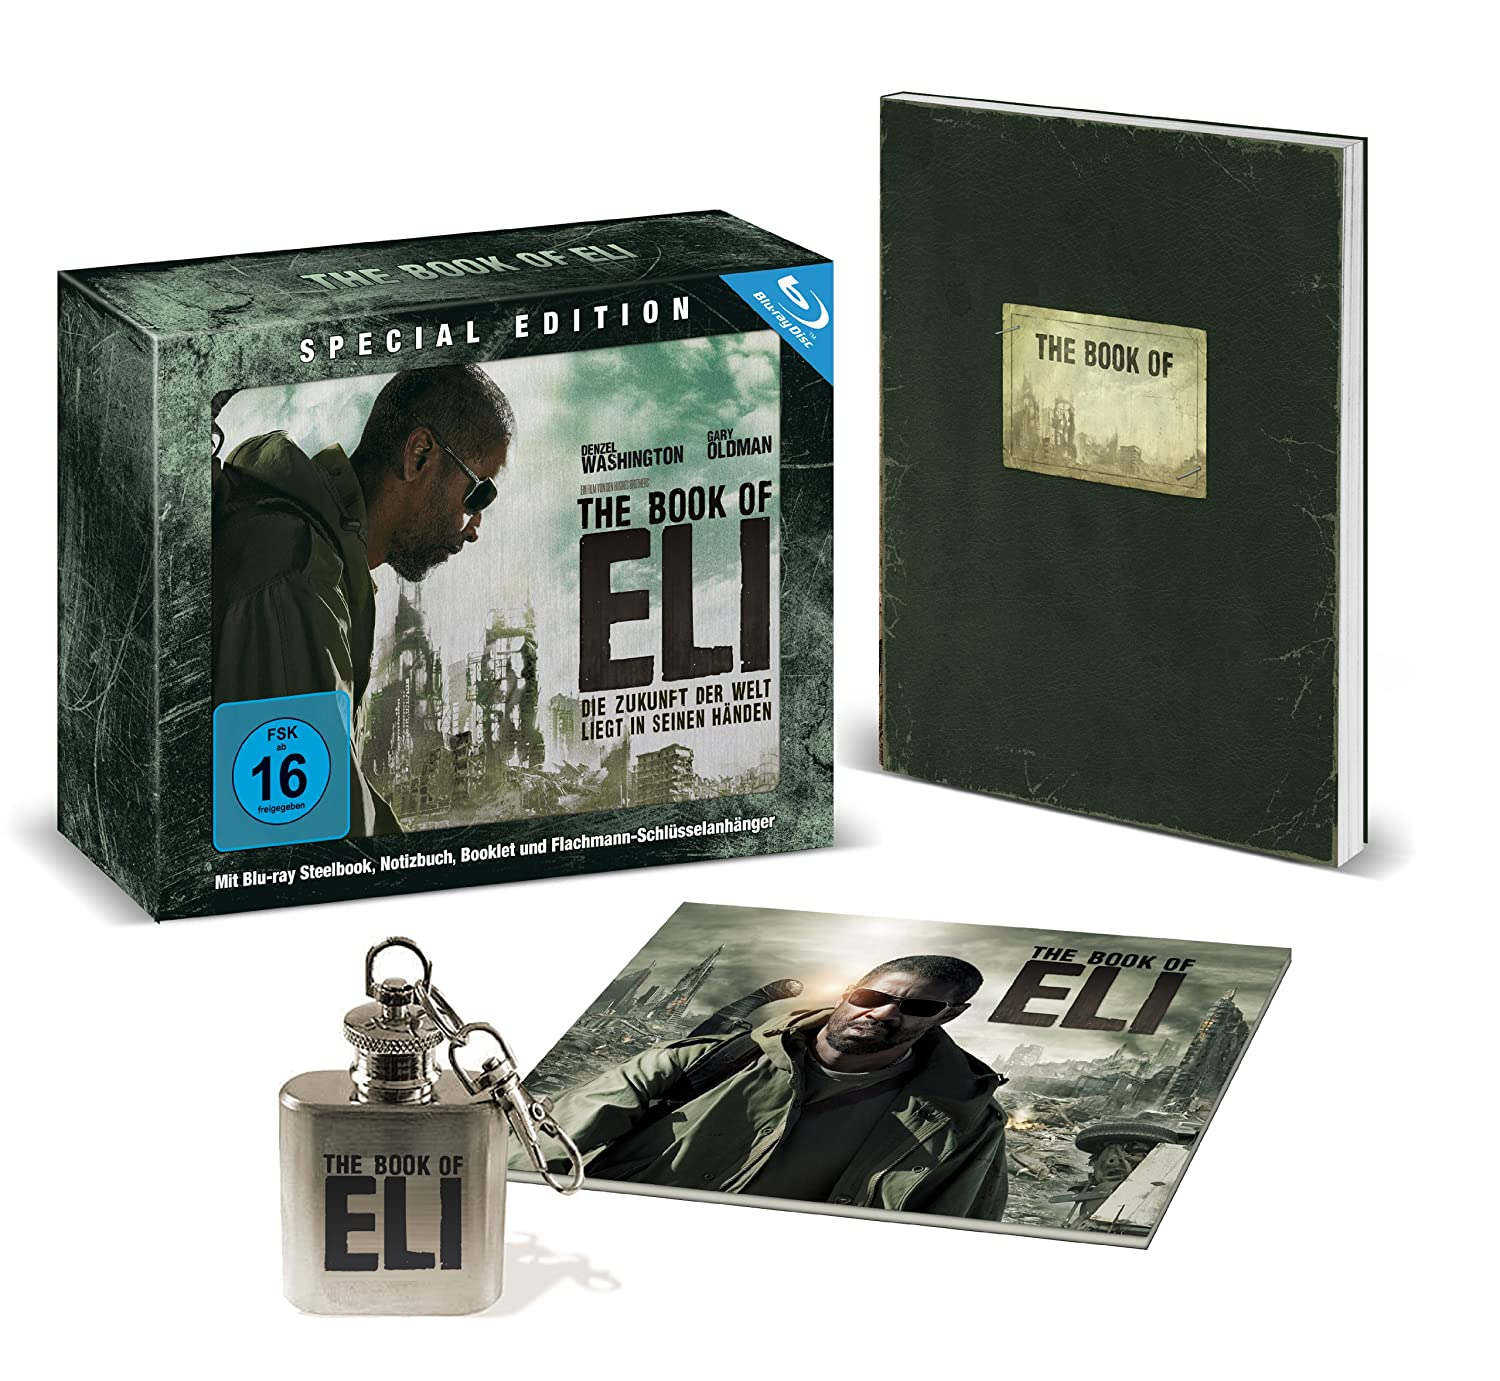 The book of eli special limited edition with steelbook blu ray the book of eli special limited edition with steelbook blu ray amazon denzel washington hughes brothers dvd blu ray buycottarizona